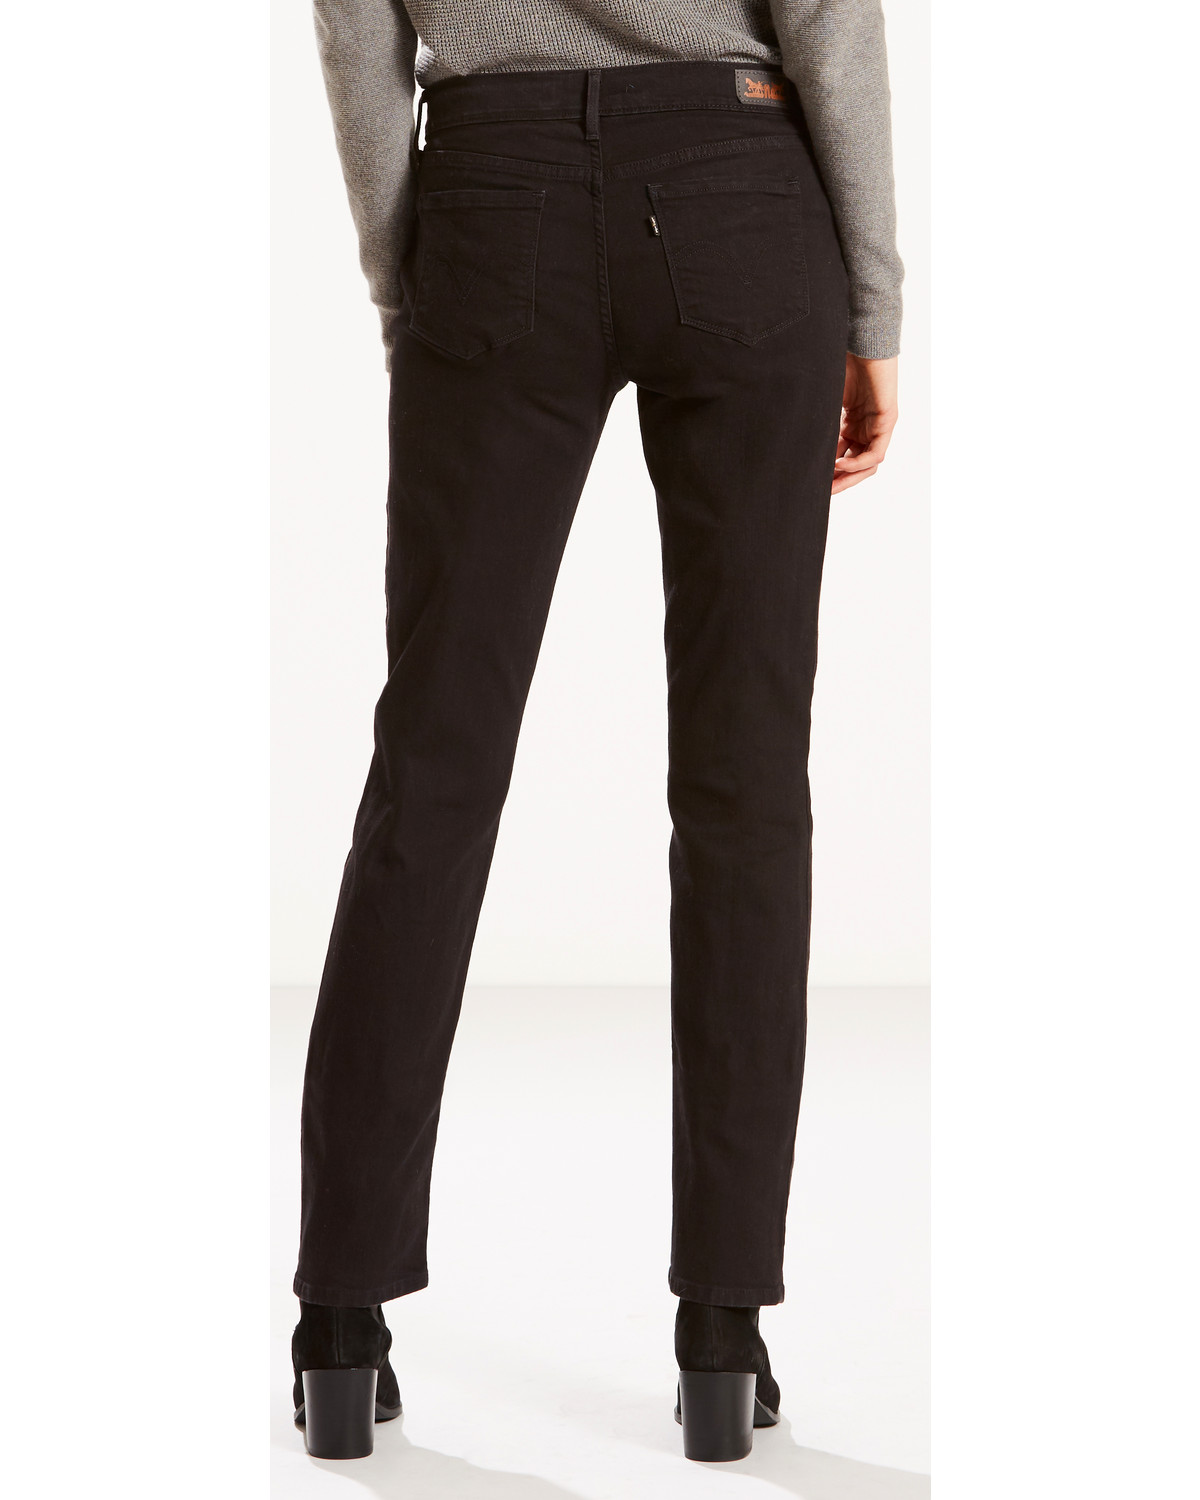 0e03140b61d Levi s Women s 505 Straight Leg Jeans - Country Outfitter